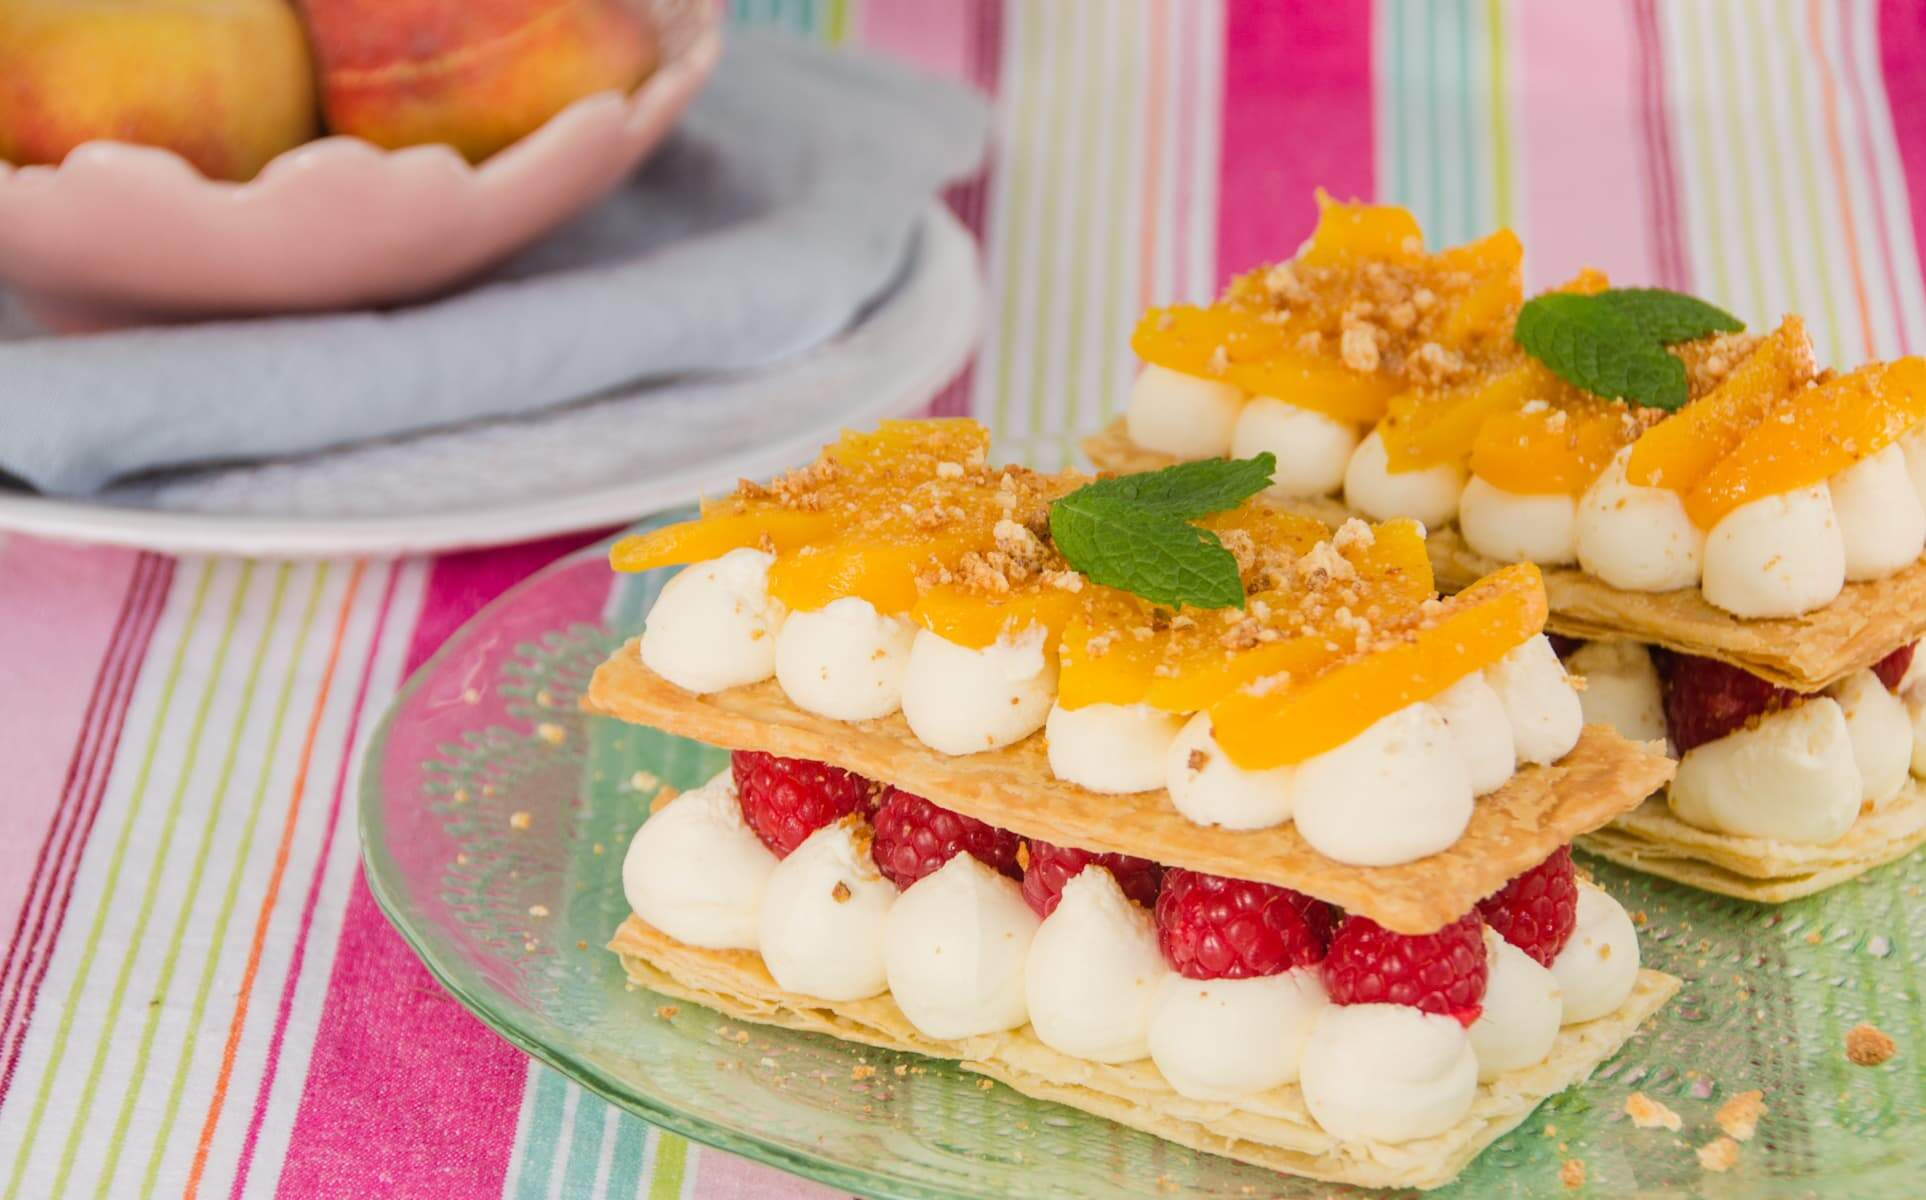 peach & raspberries layered beteen puff pastry slices with cream served outside